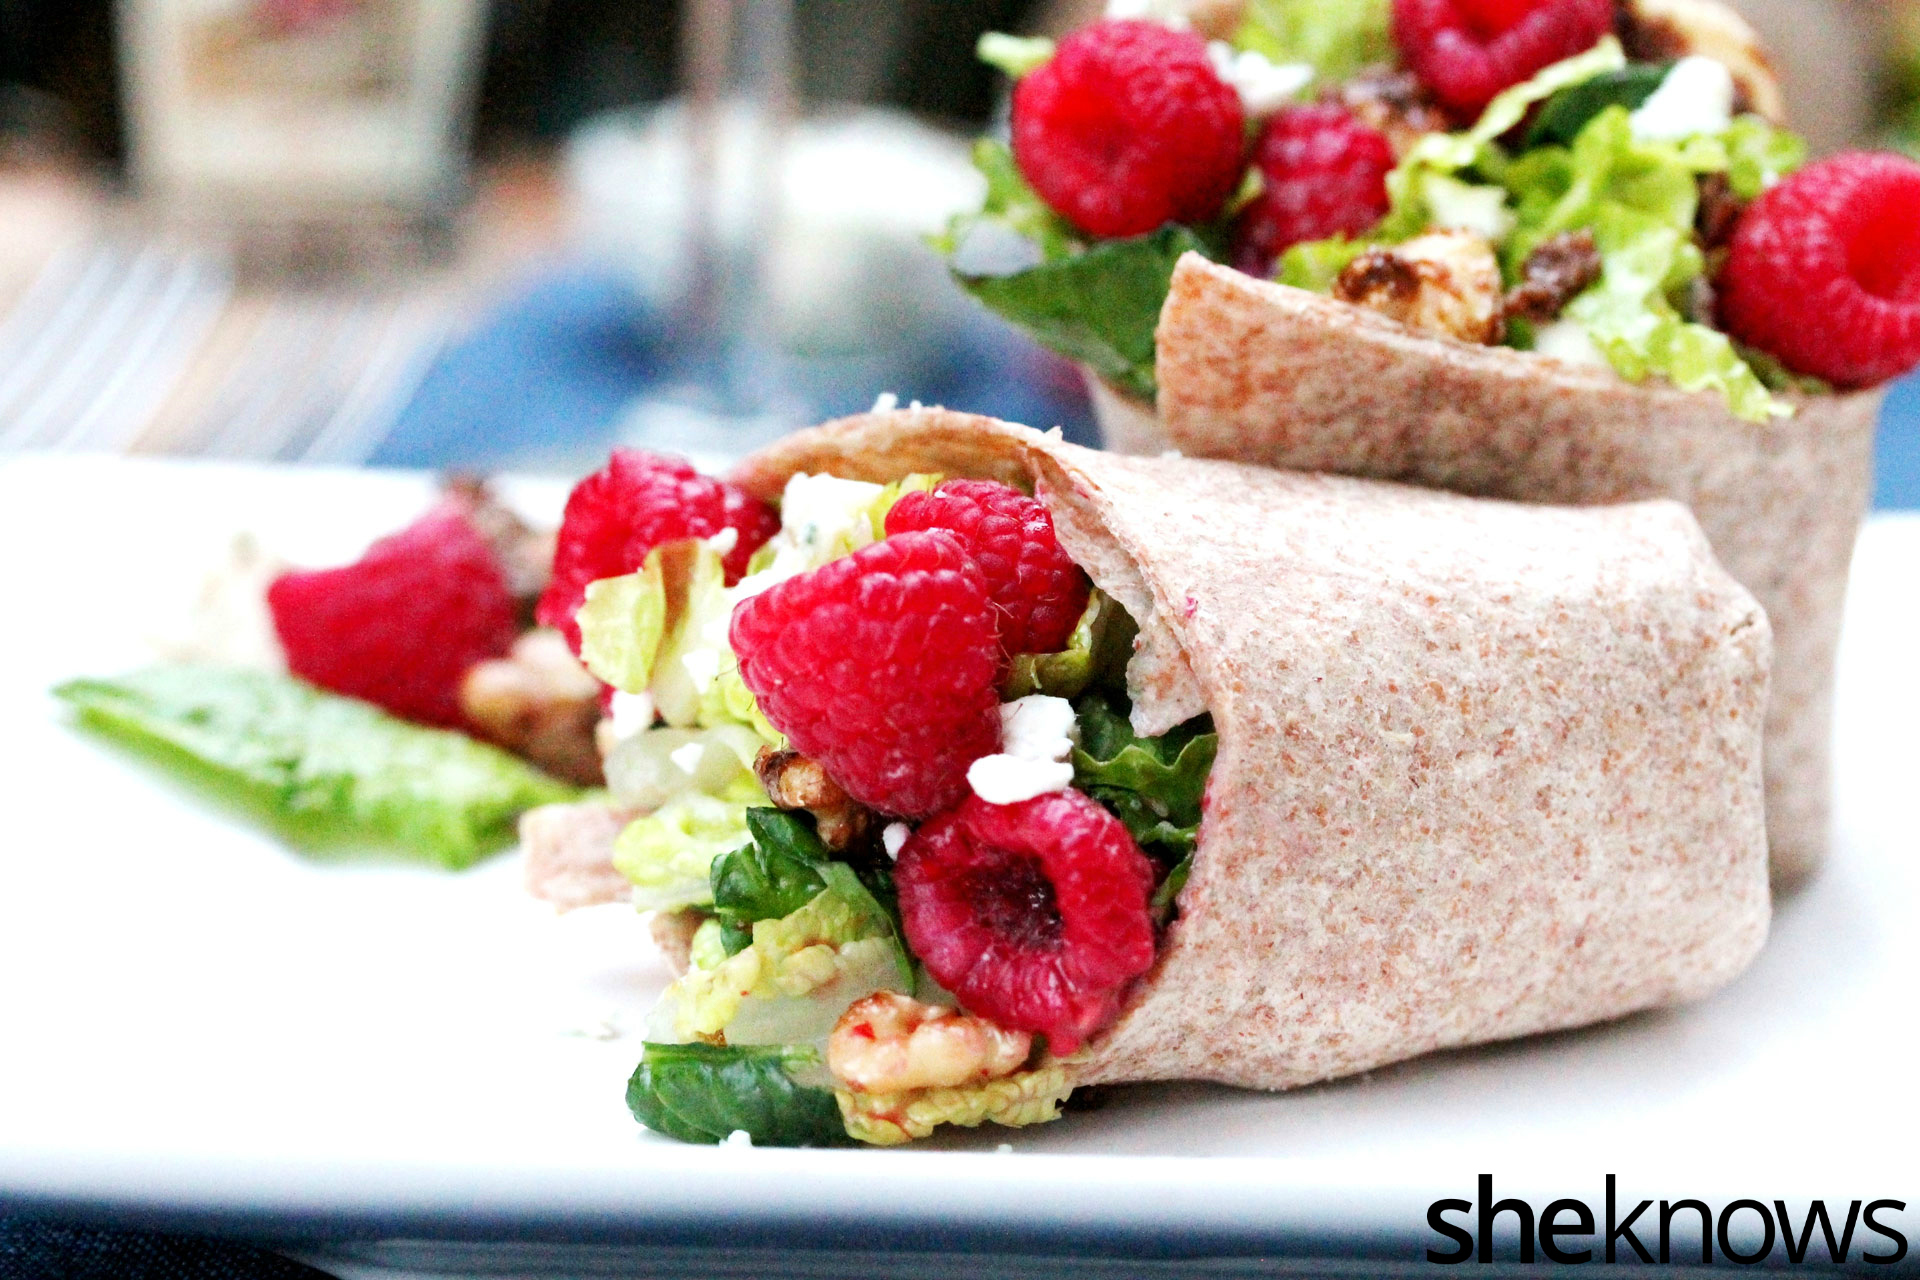 Raspberry and spinach wrap on plate